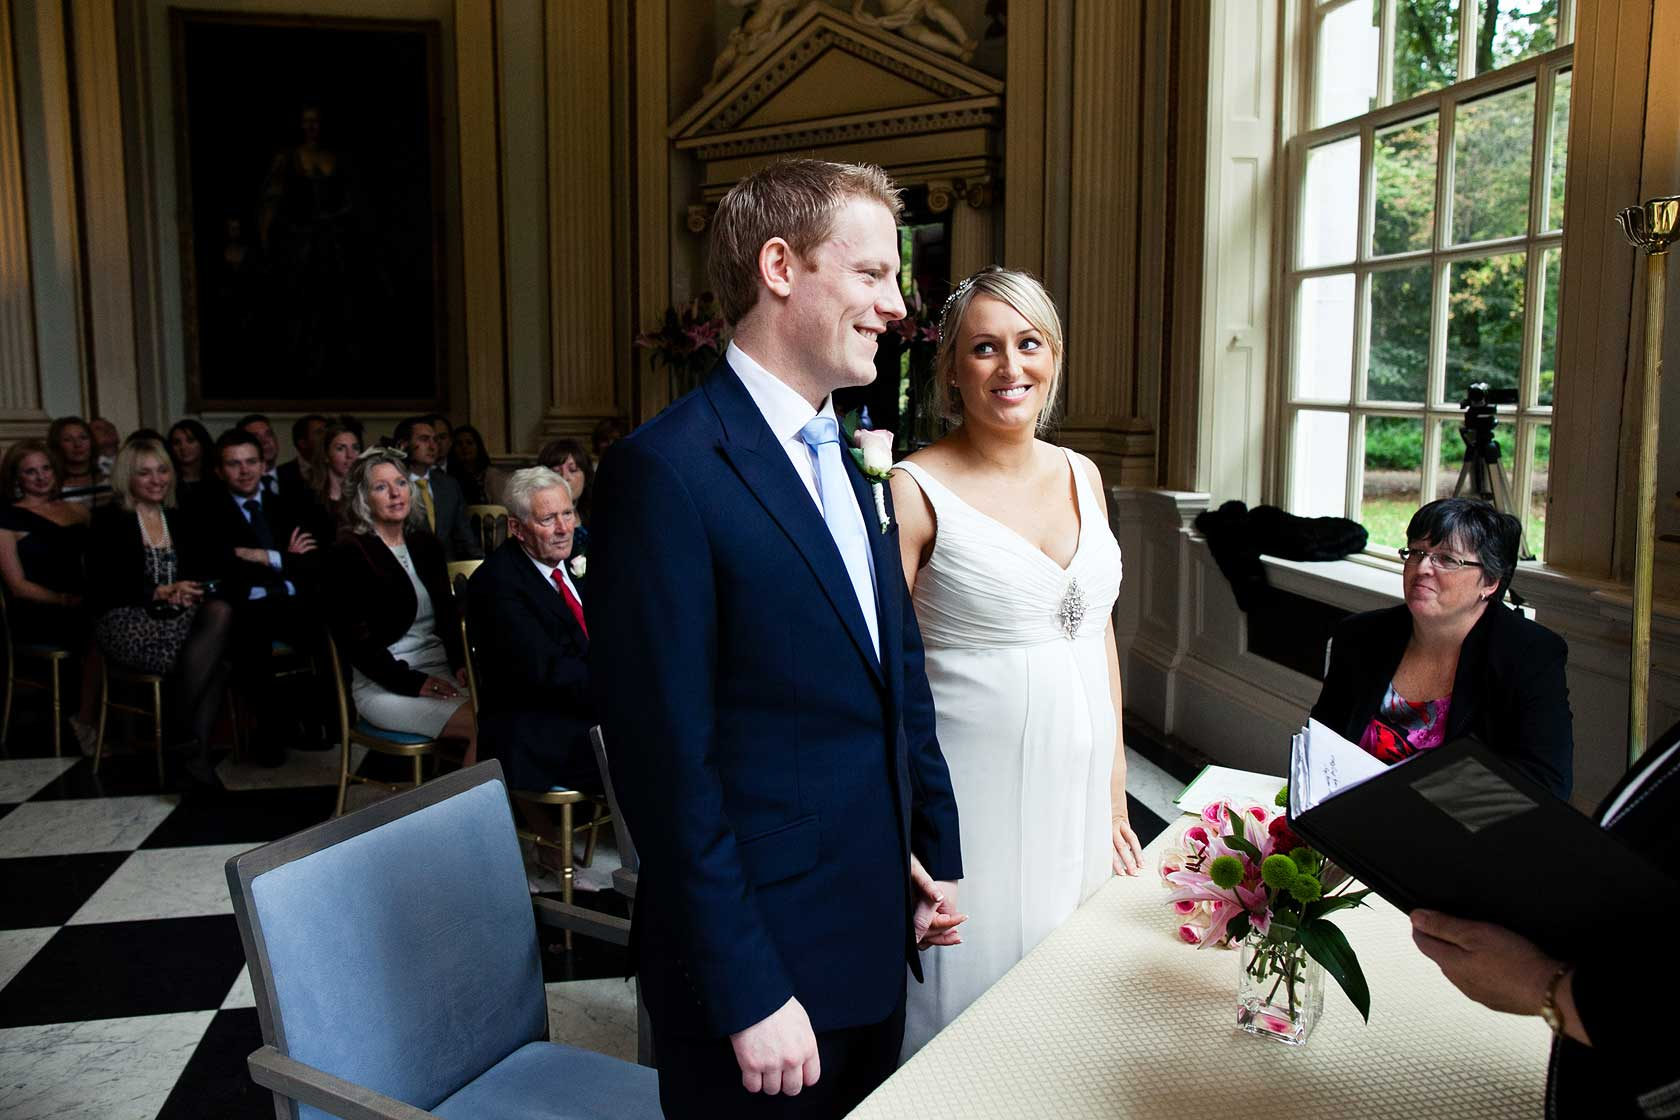 Reportage Wedding Photography in The Octagon Room